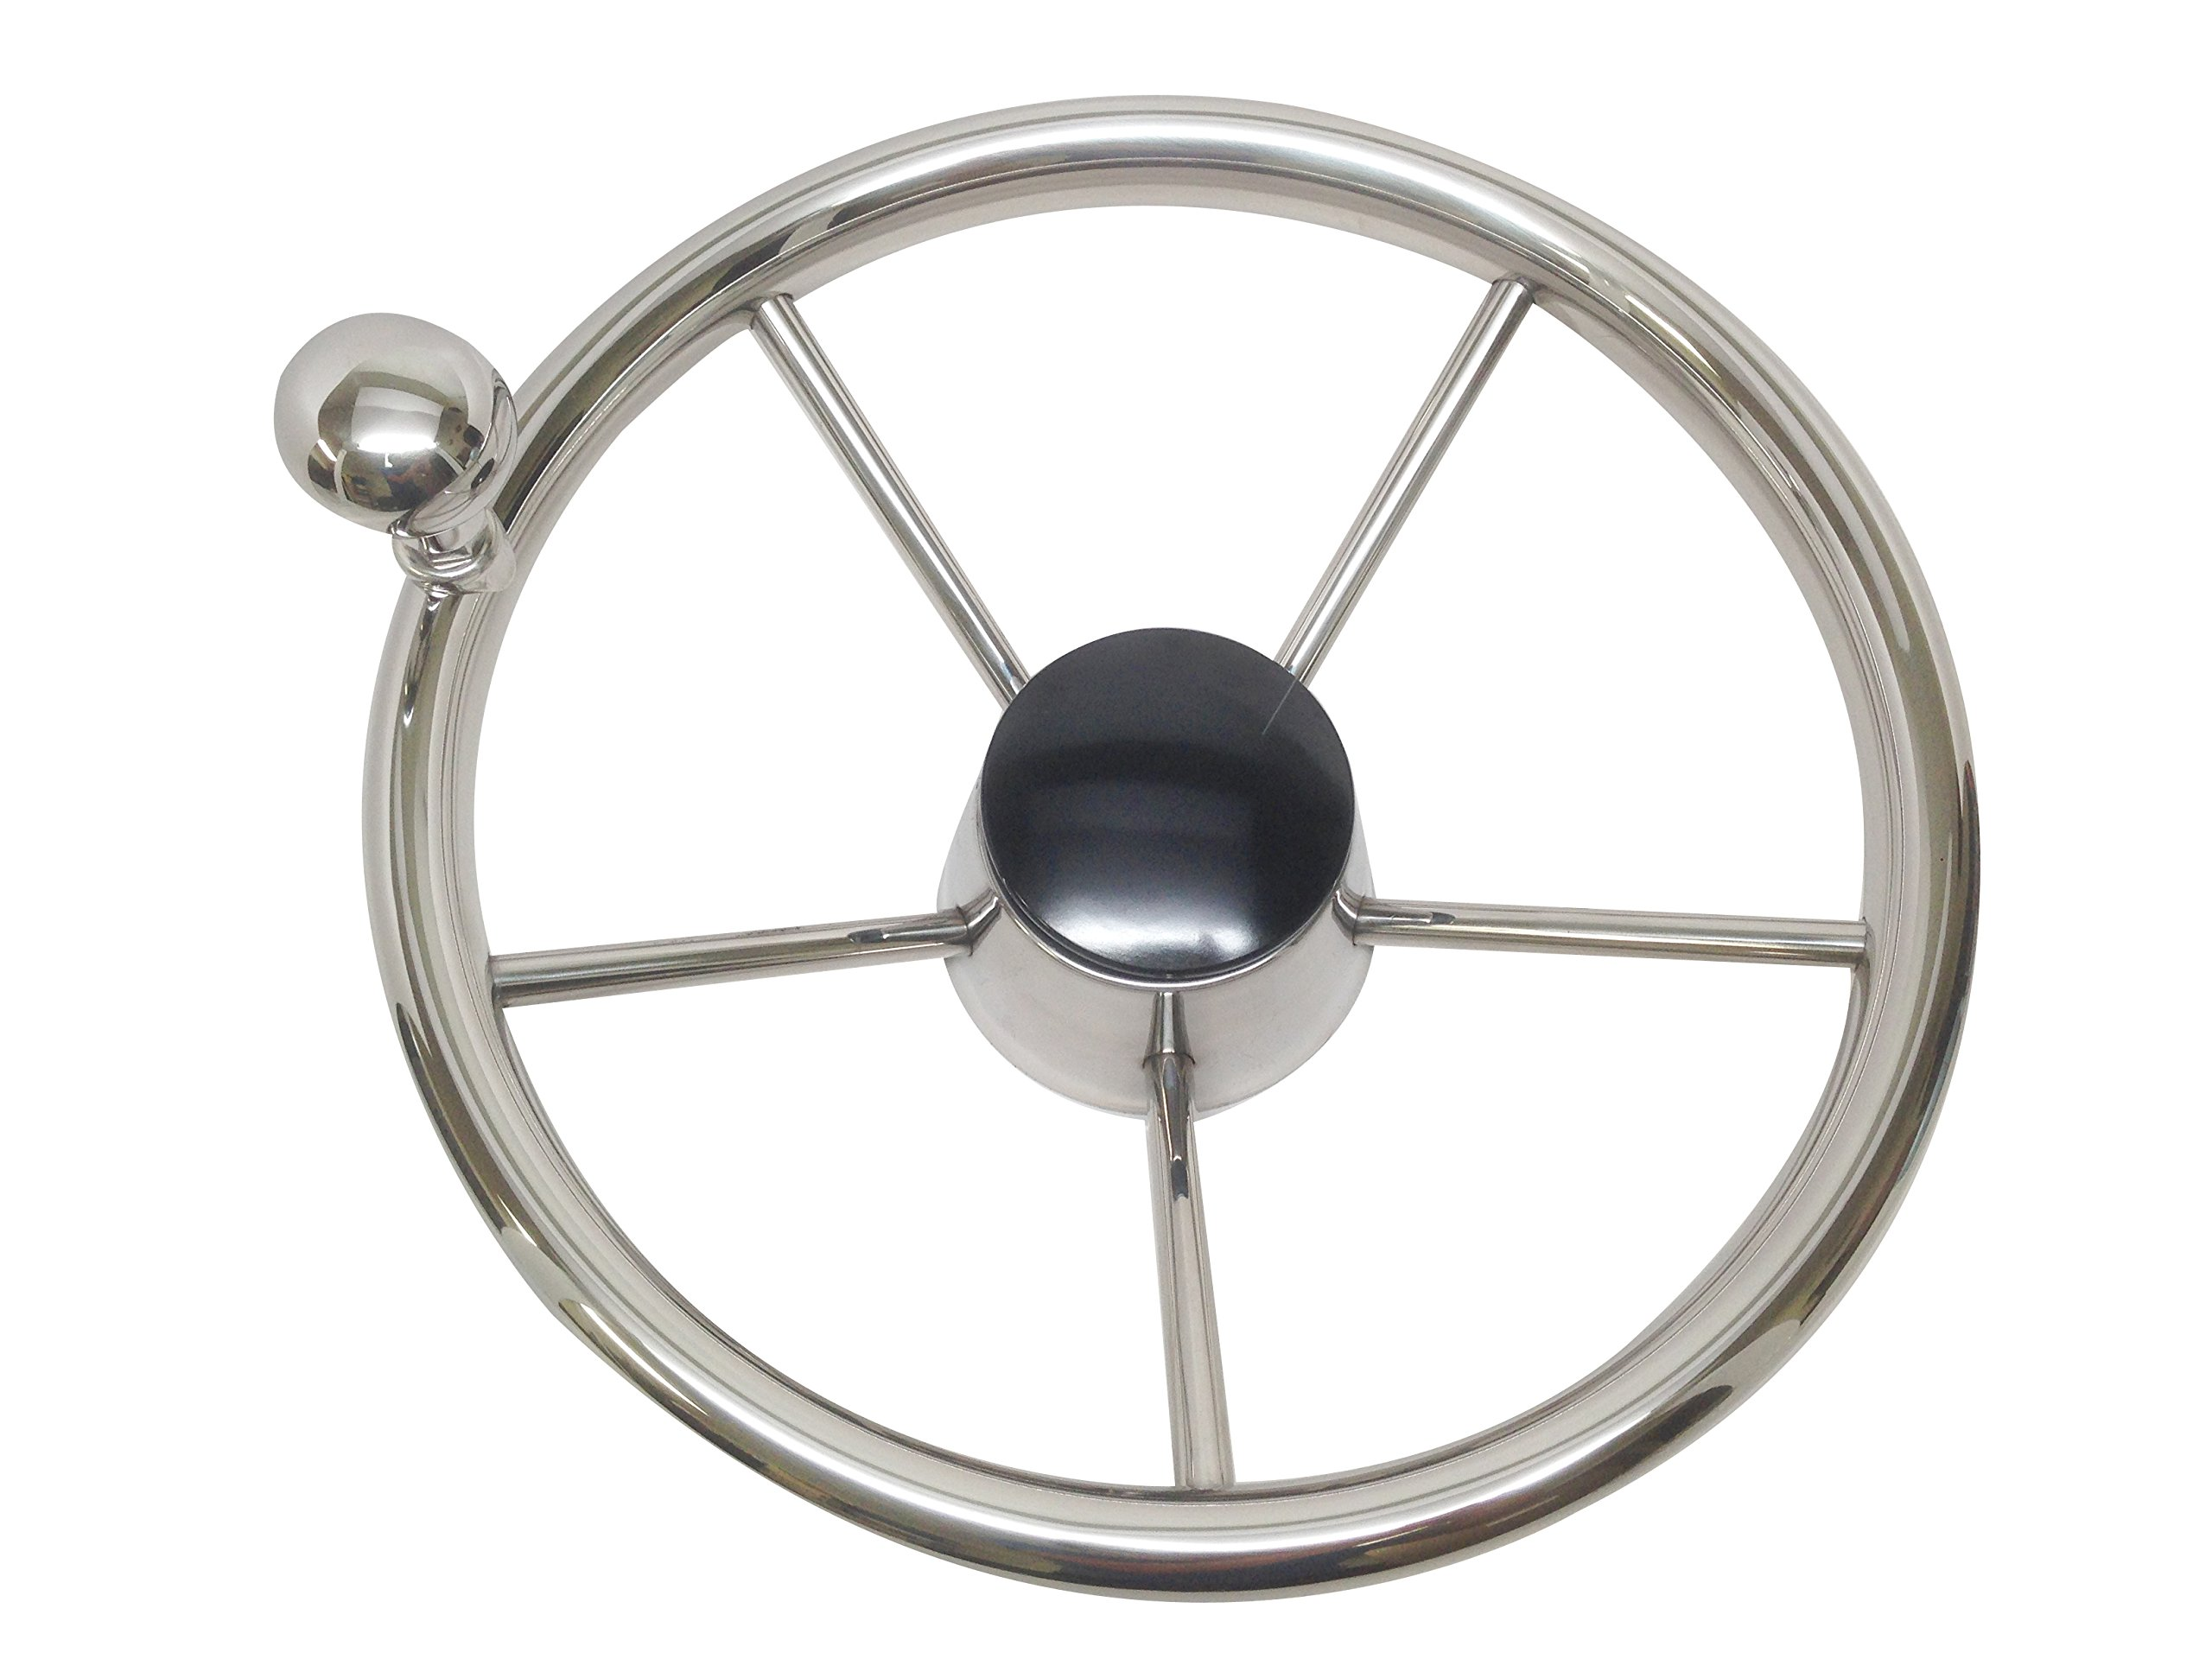 Pactrade Marine Boat 5 Spoke Steering Wheel with Turing Knob 13 1/2'' Dia Stainless Steel